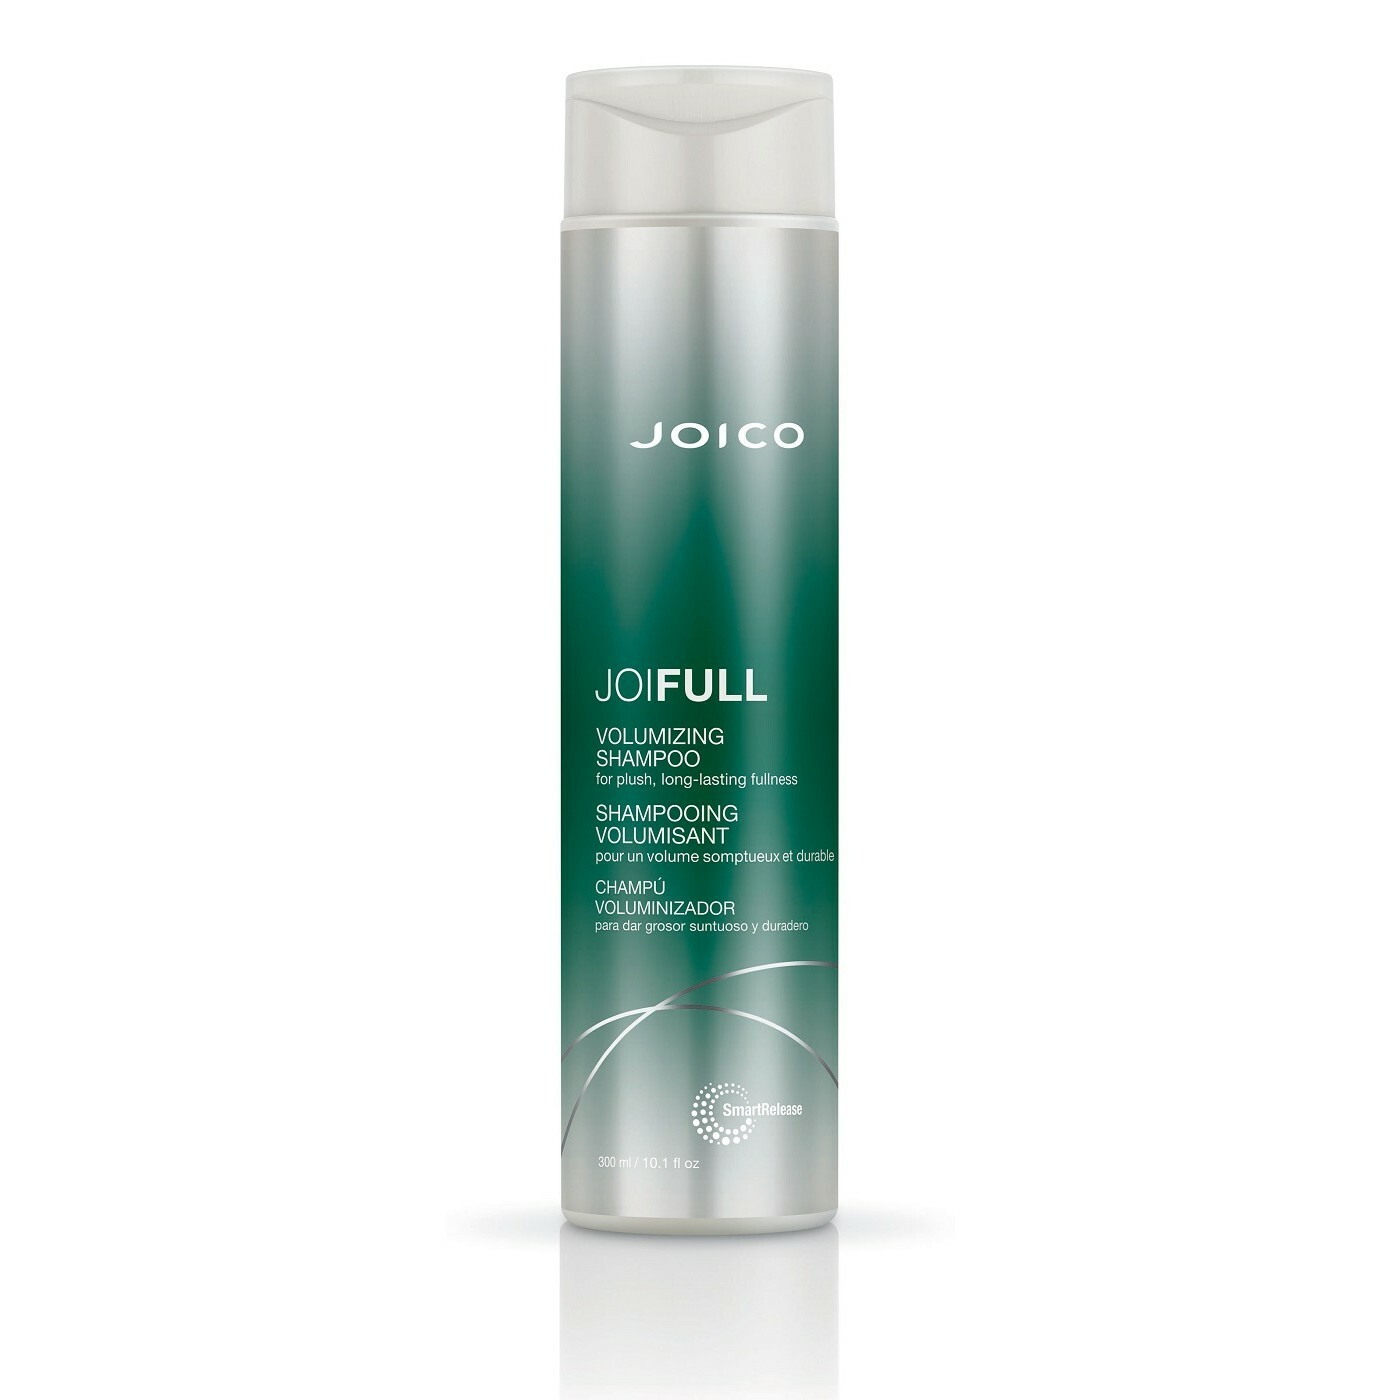 Joico Joiful Volumising Shampoo 300ml